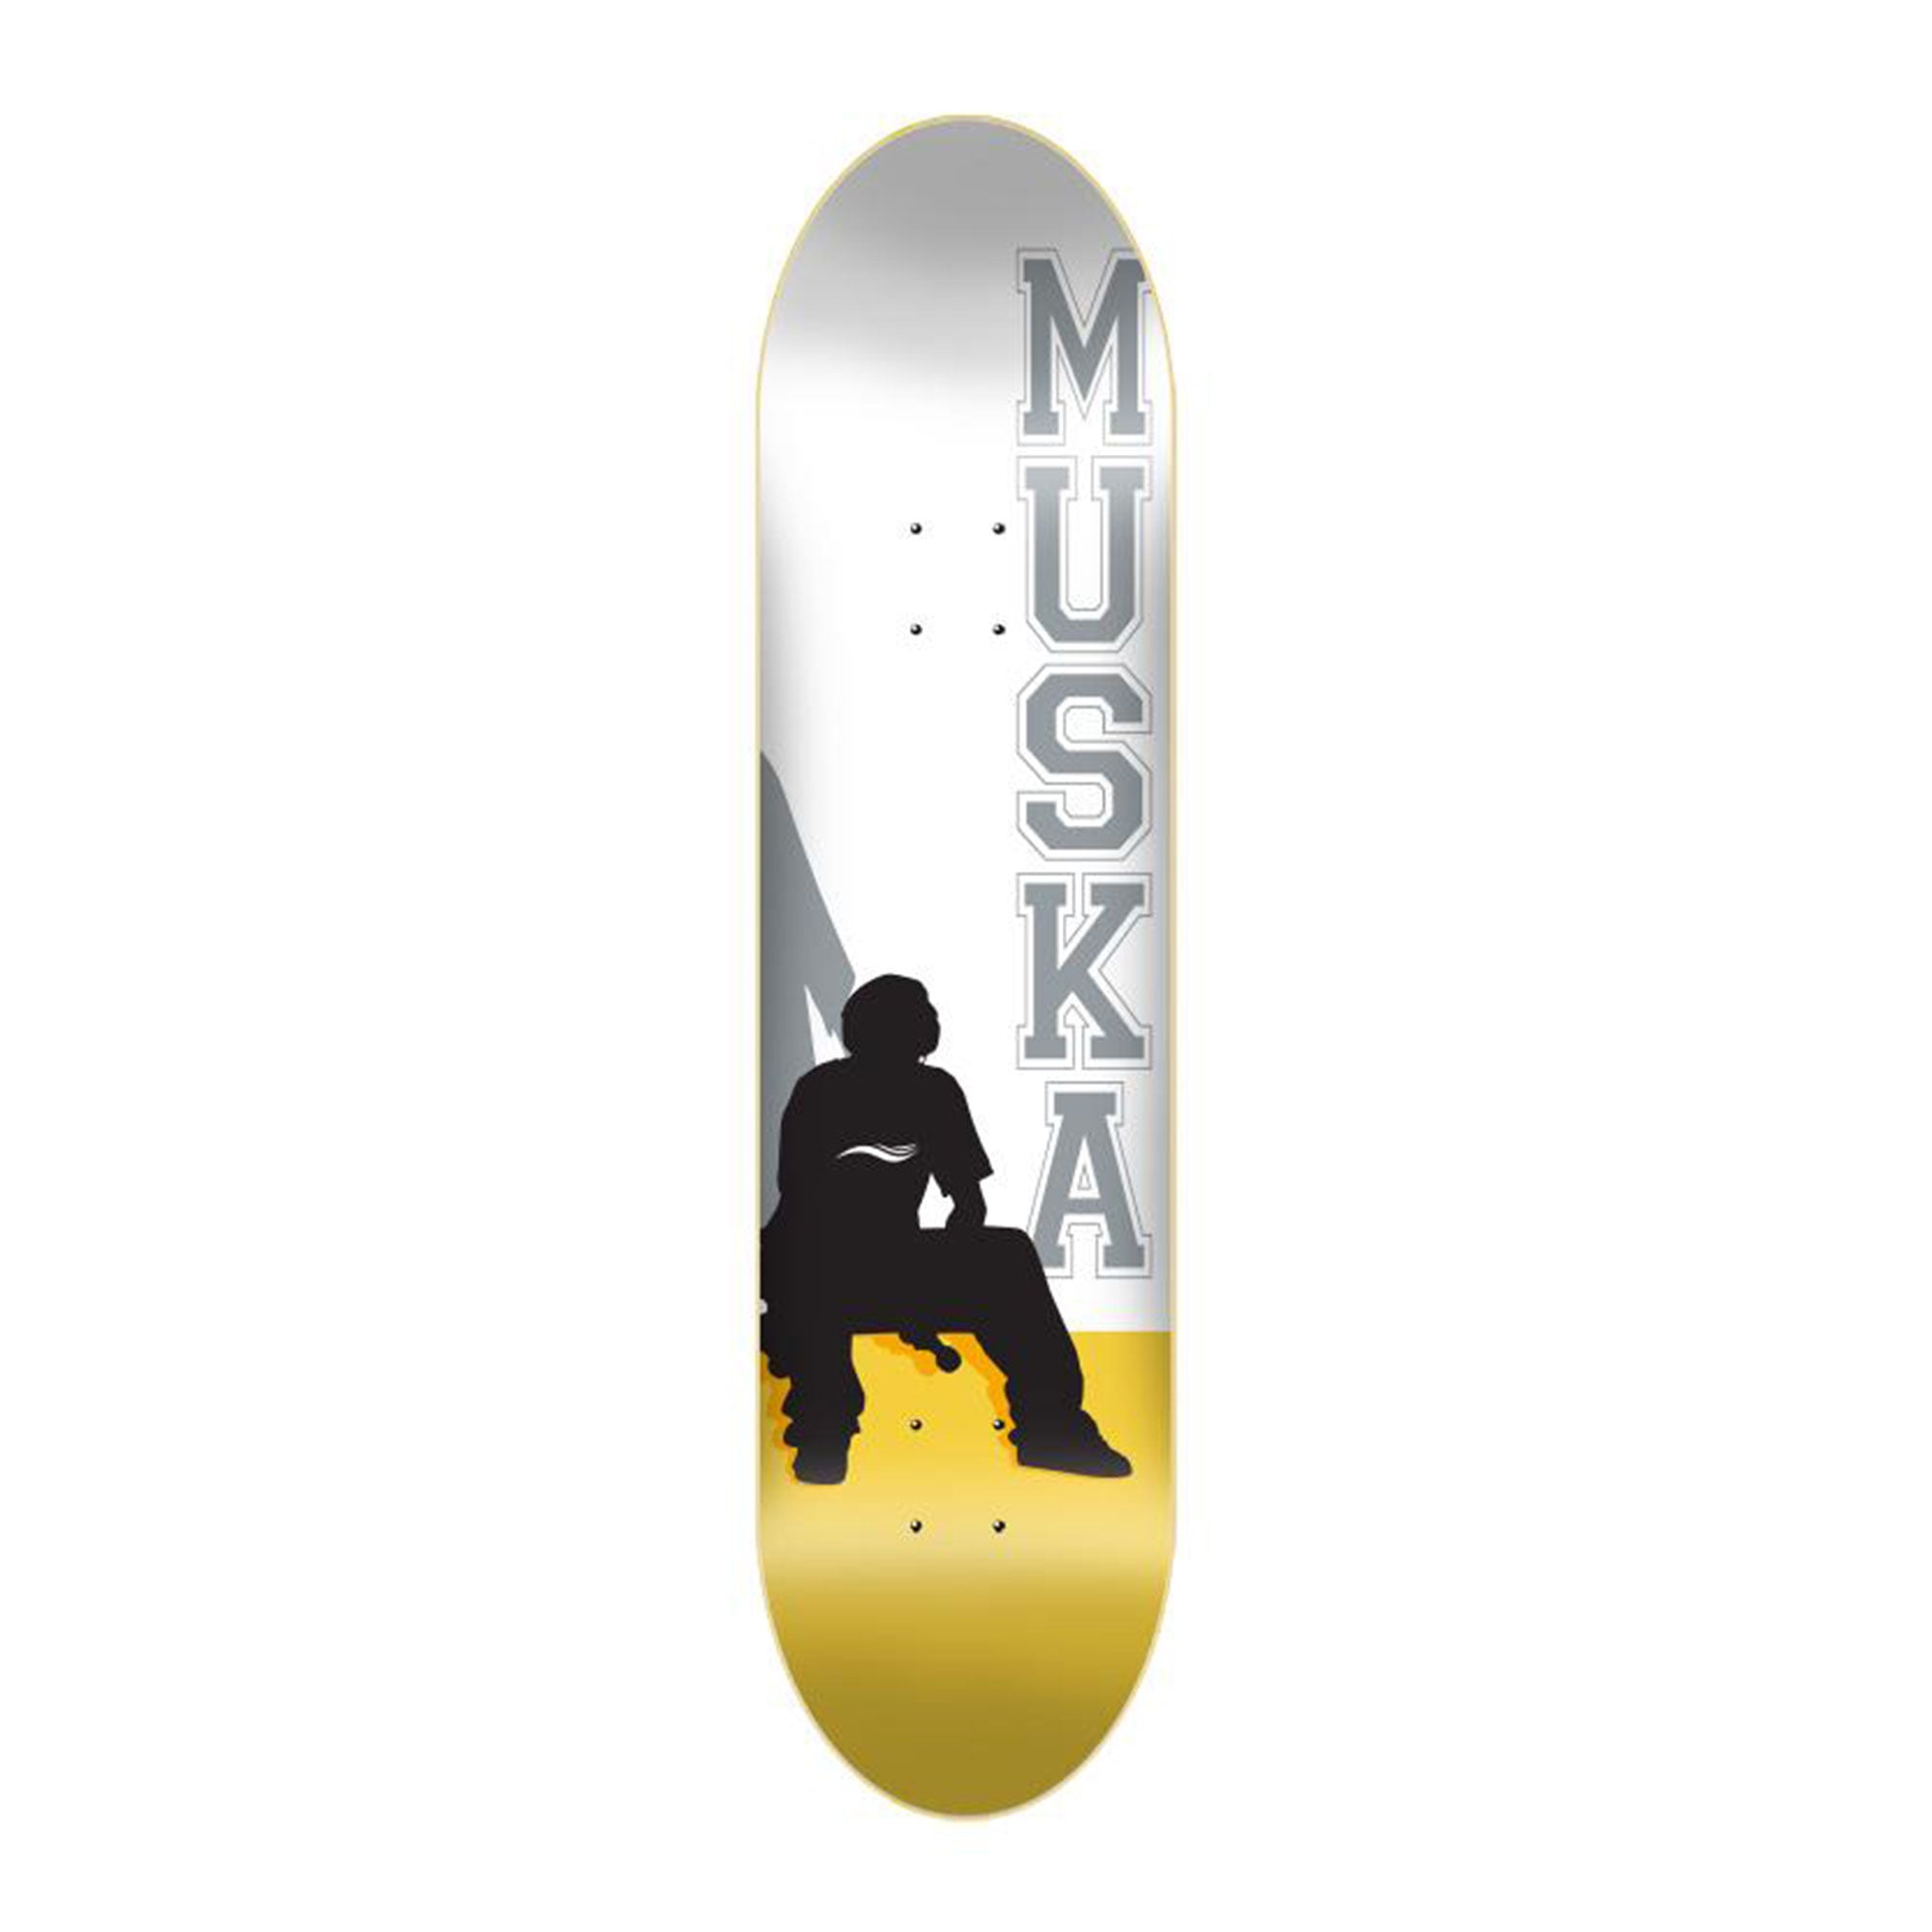 Shortys Muska Silhouette Deck Product Photo #1